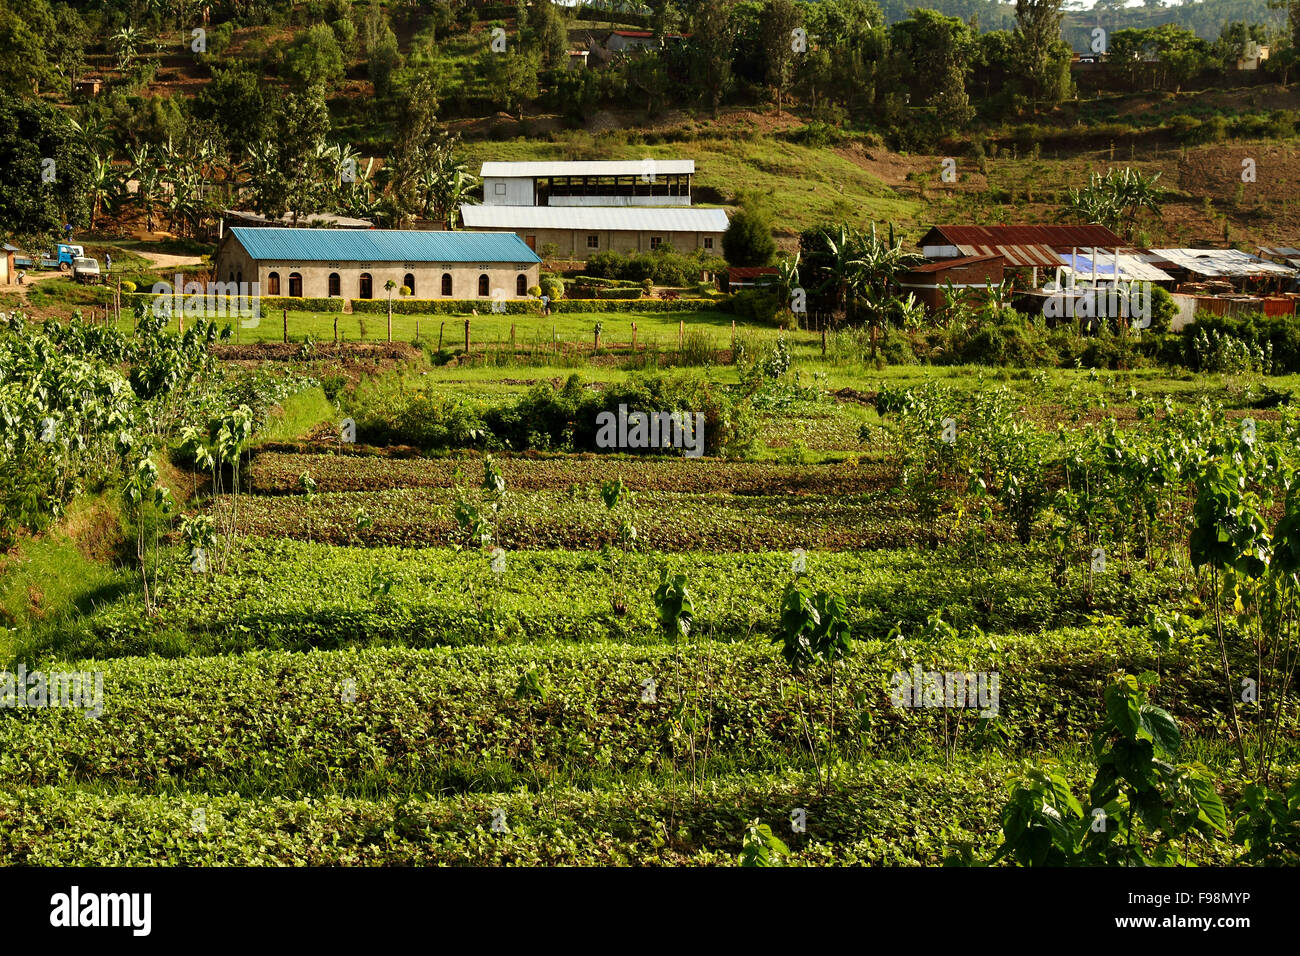 An example of African agriculture in Kibuye, Rwanda - Stock Image